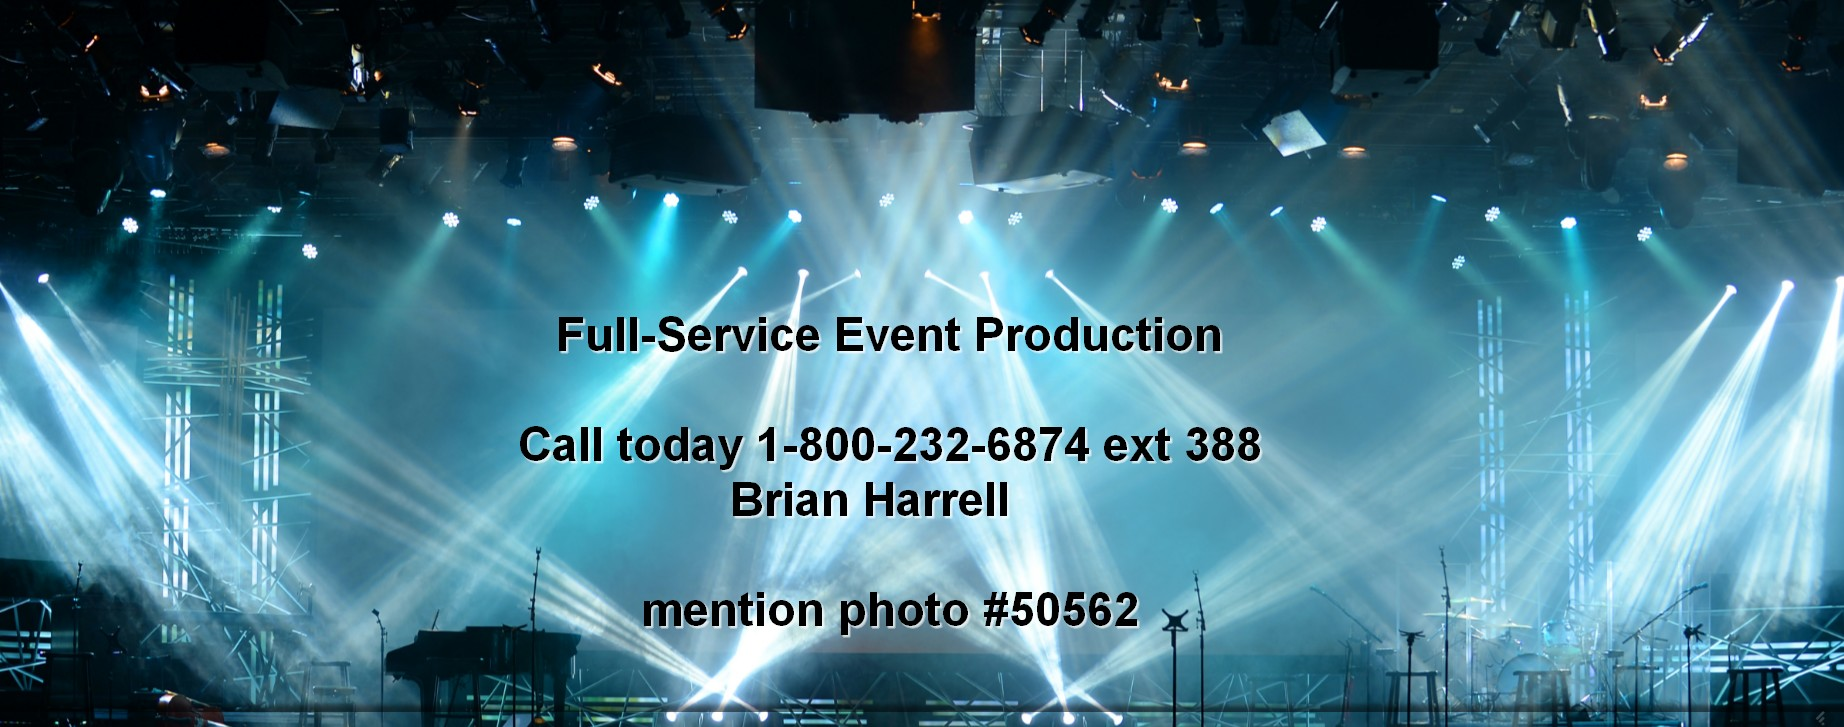 Audio Visual Production Full Service Event Concert Services Nationwide Orlando Florida